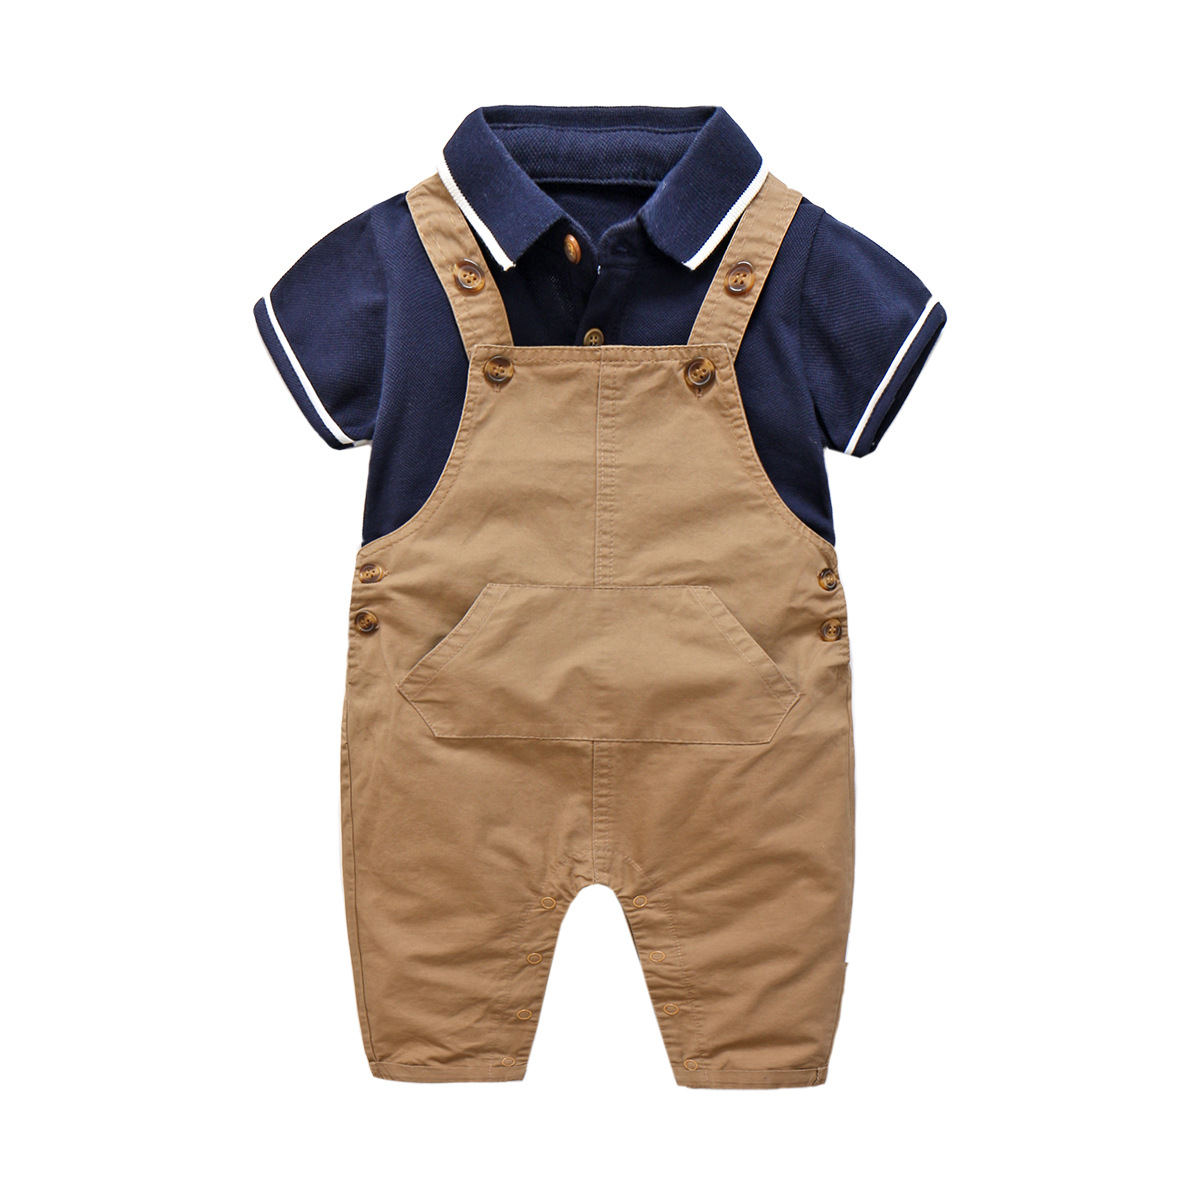 Baby Boys Summer Set Lapel Rompers +overalls, Toddler Handsome Gentleman Suspenders Trousers Set Outfit Baby Clothes 6-24M